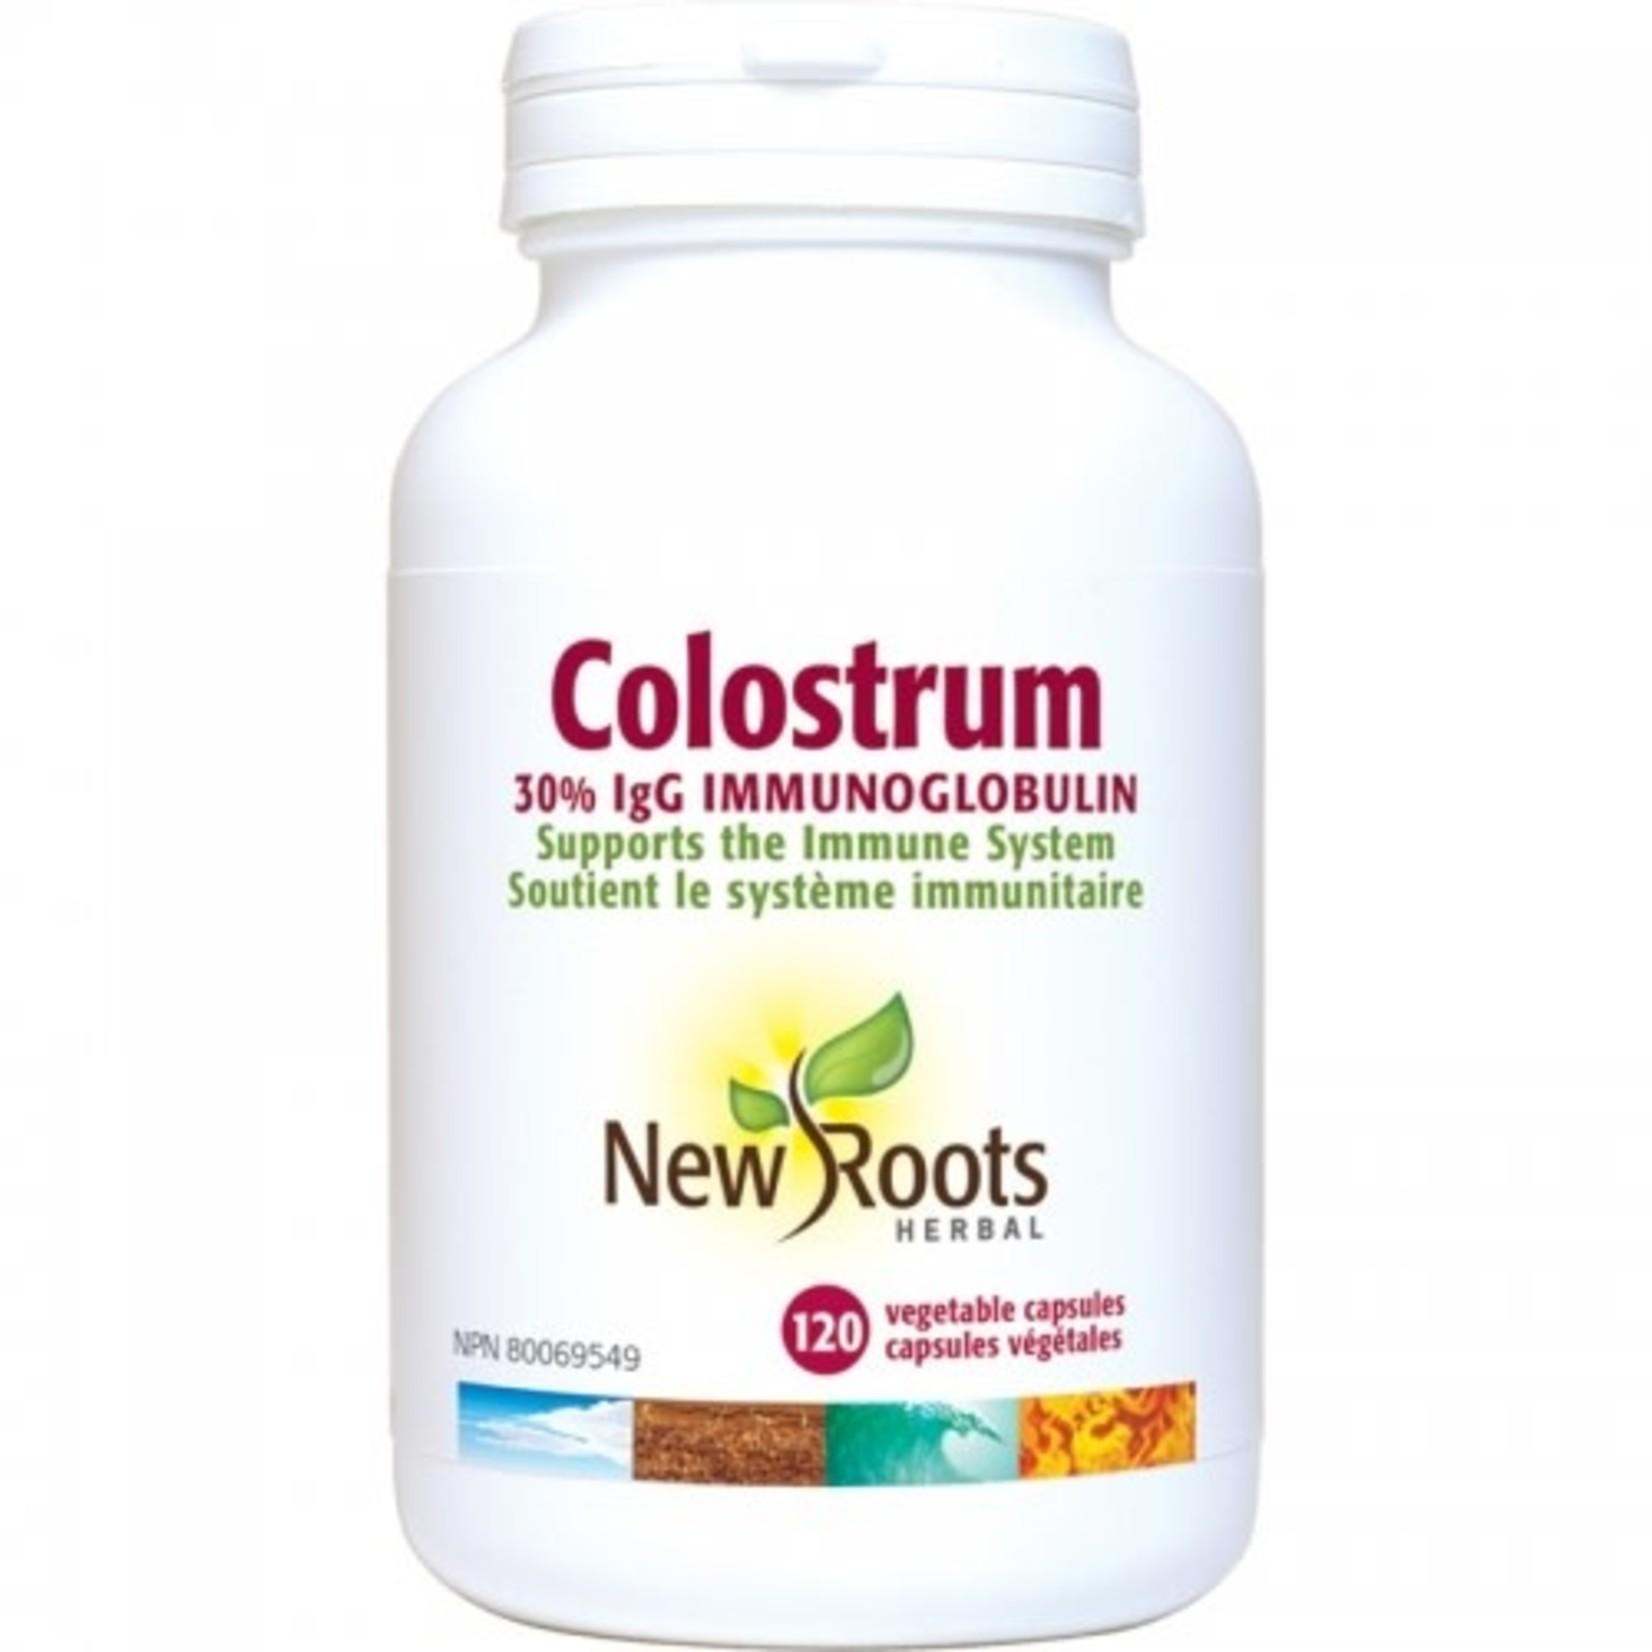 New Roots New Roots Colostrum 60 capsules